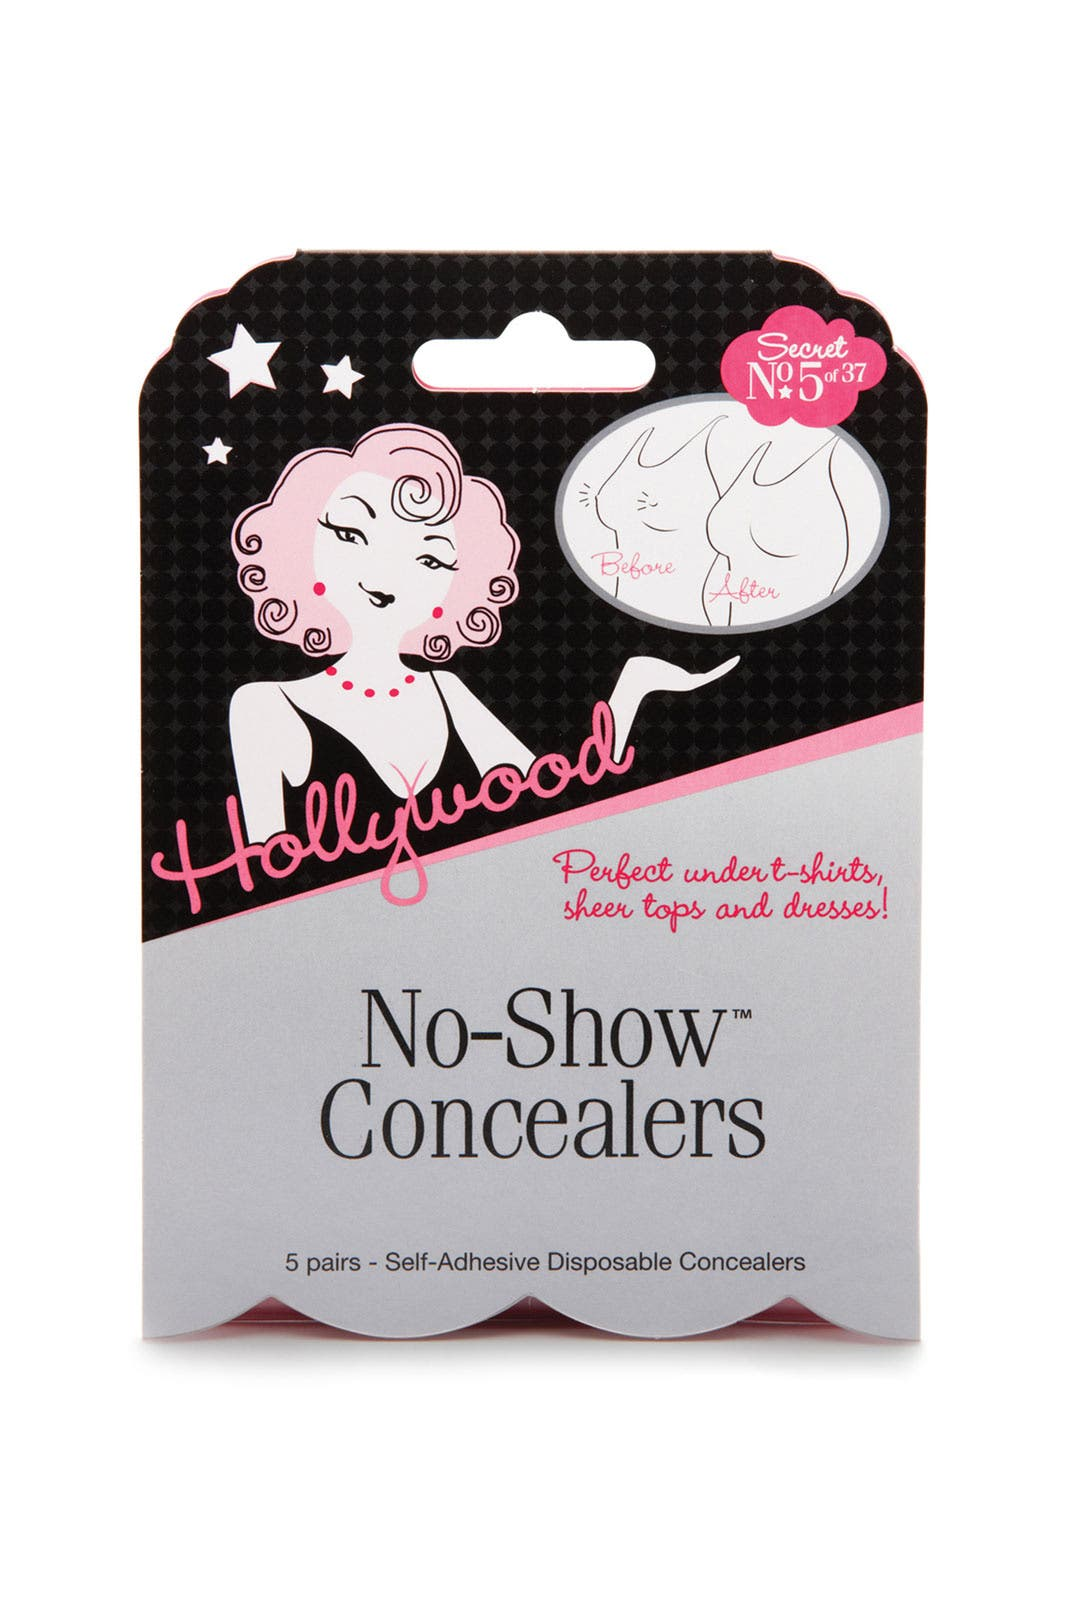 No-show Nipple Concealers by Hollywood Fashion Secrets